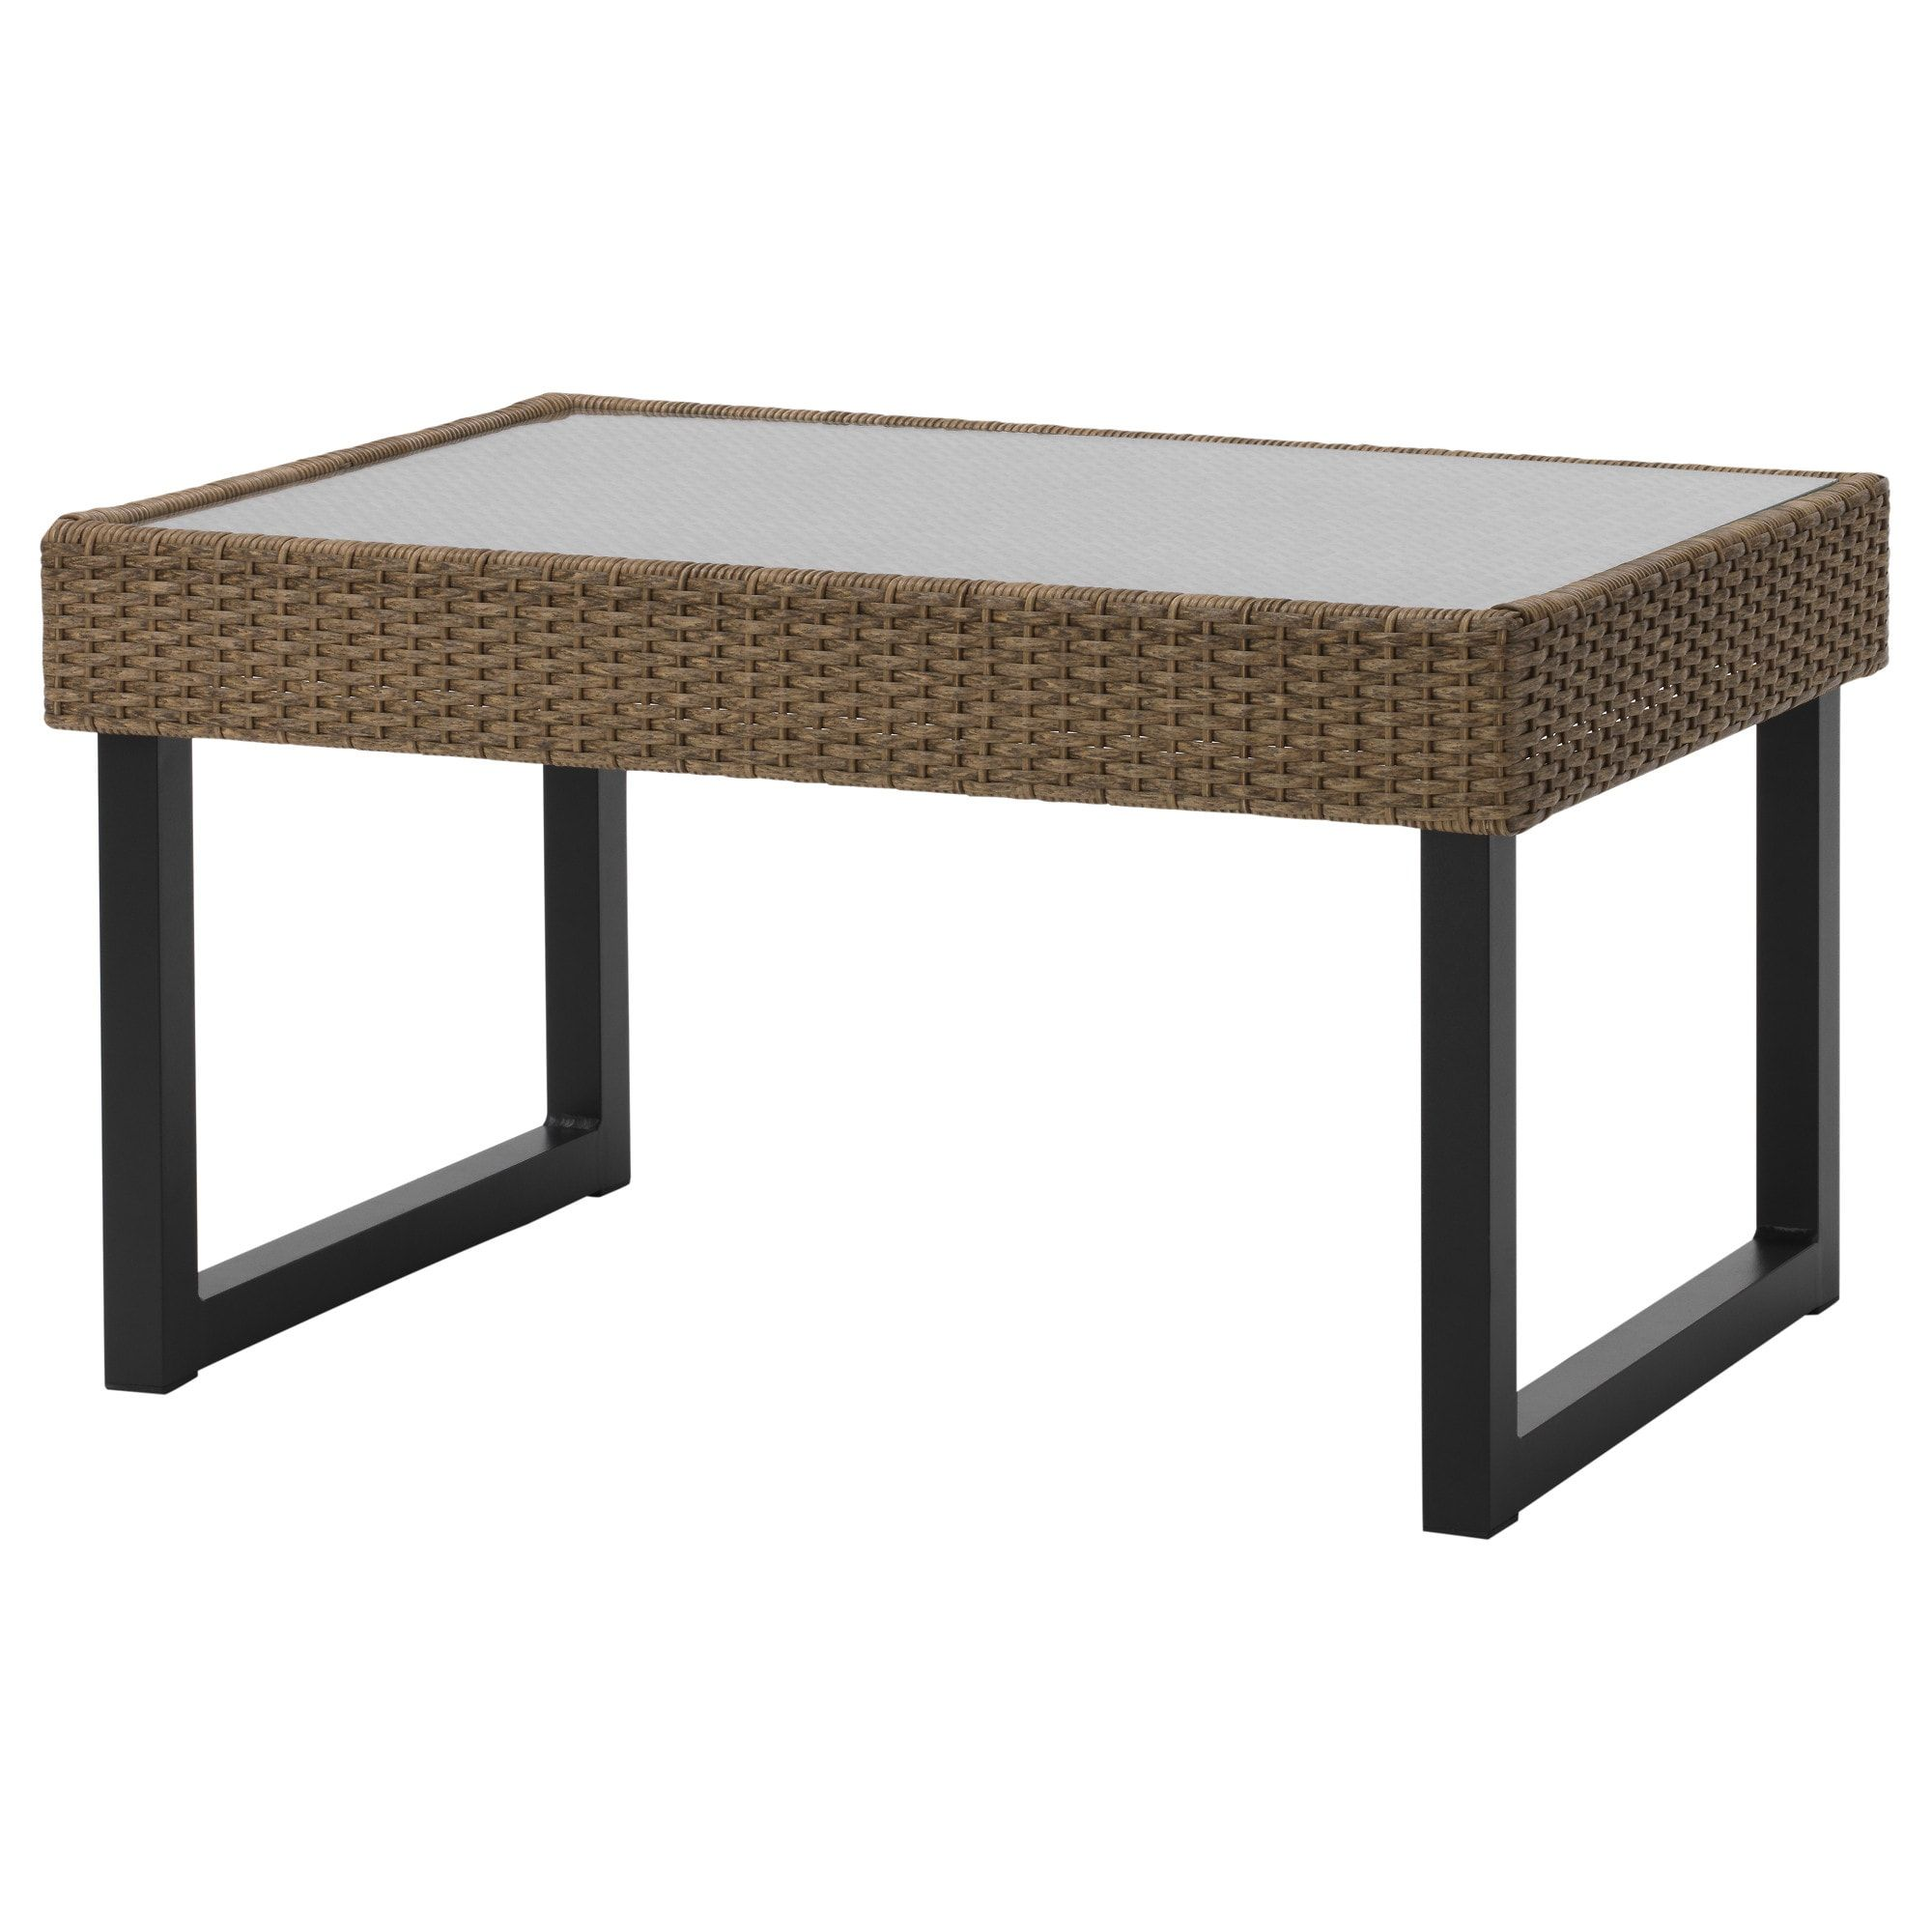 Sollerön Coffee Table Outdoor Anthracite Brown In 2018 Home